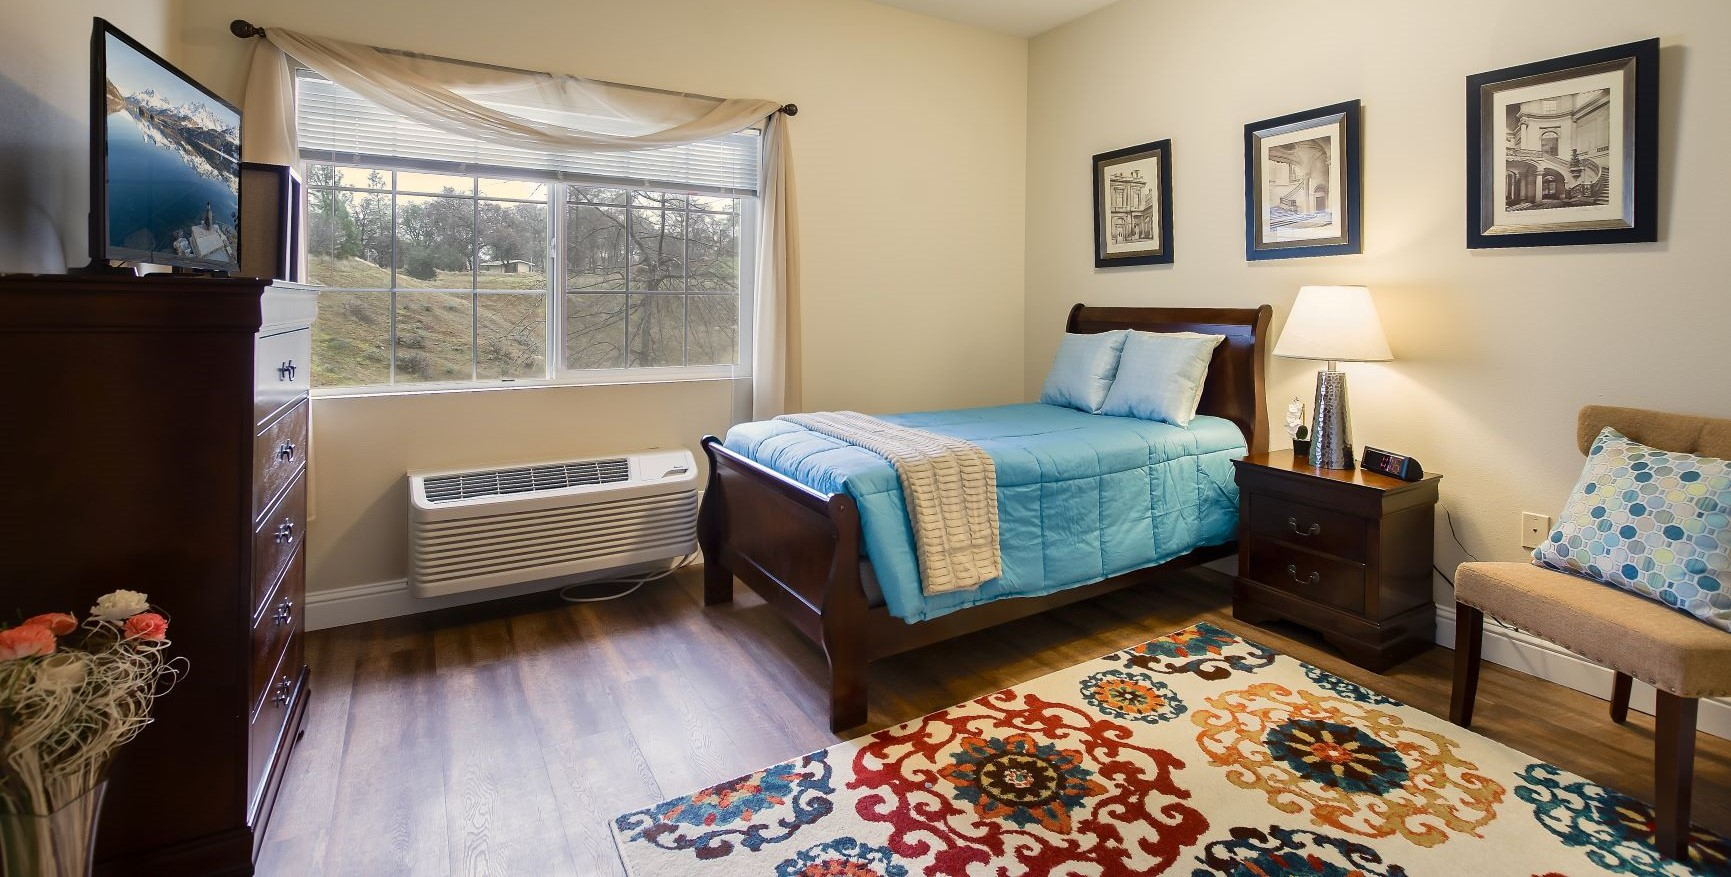 One of the gorgeous bedrooms at Pacifica Senior Living Country Crest.